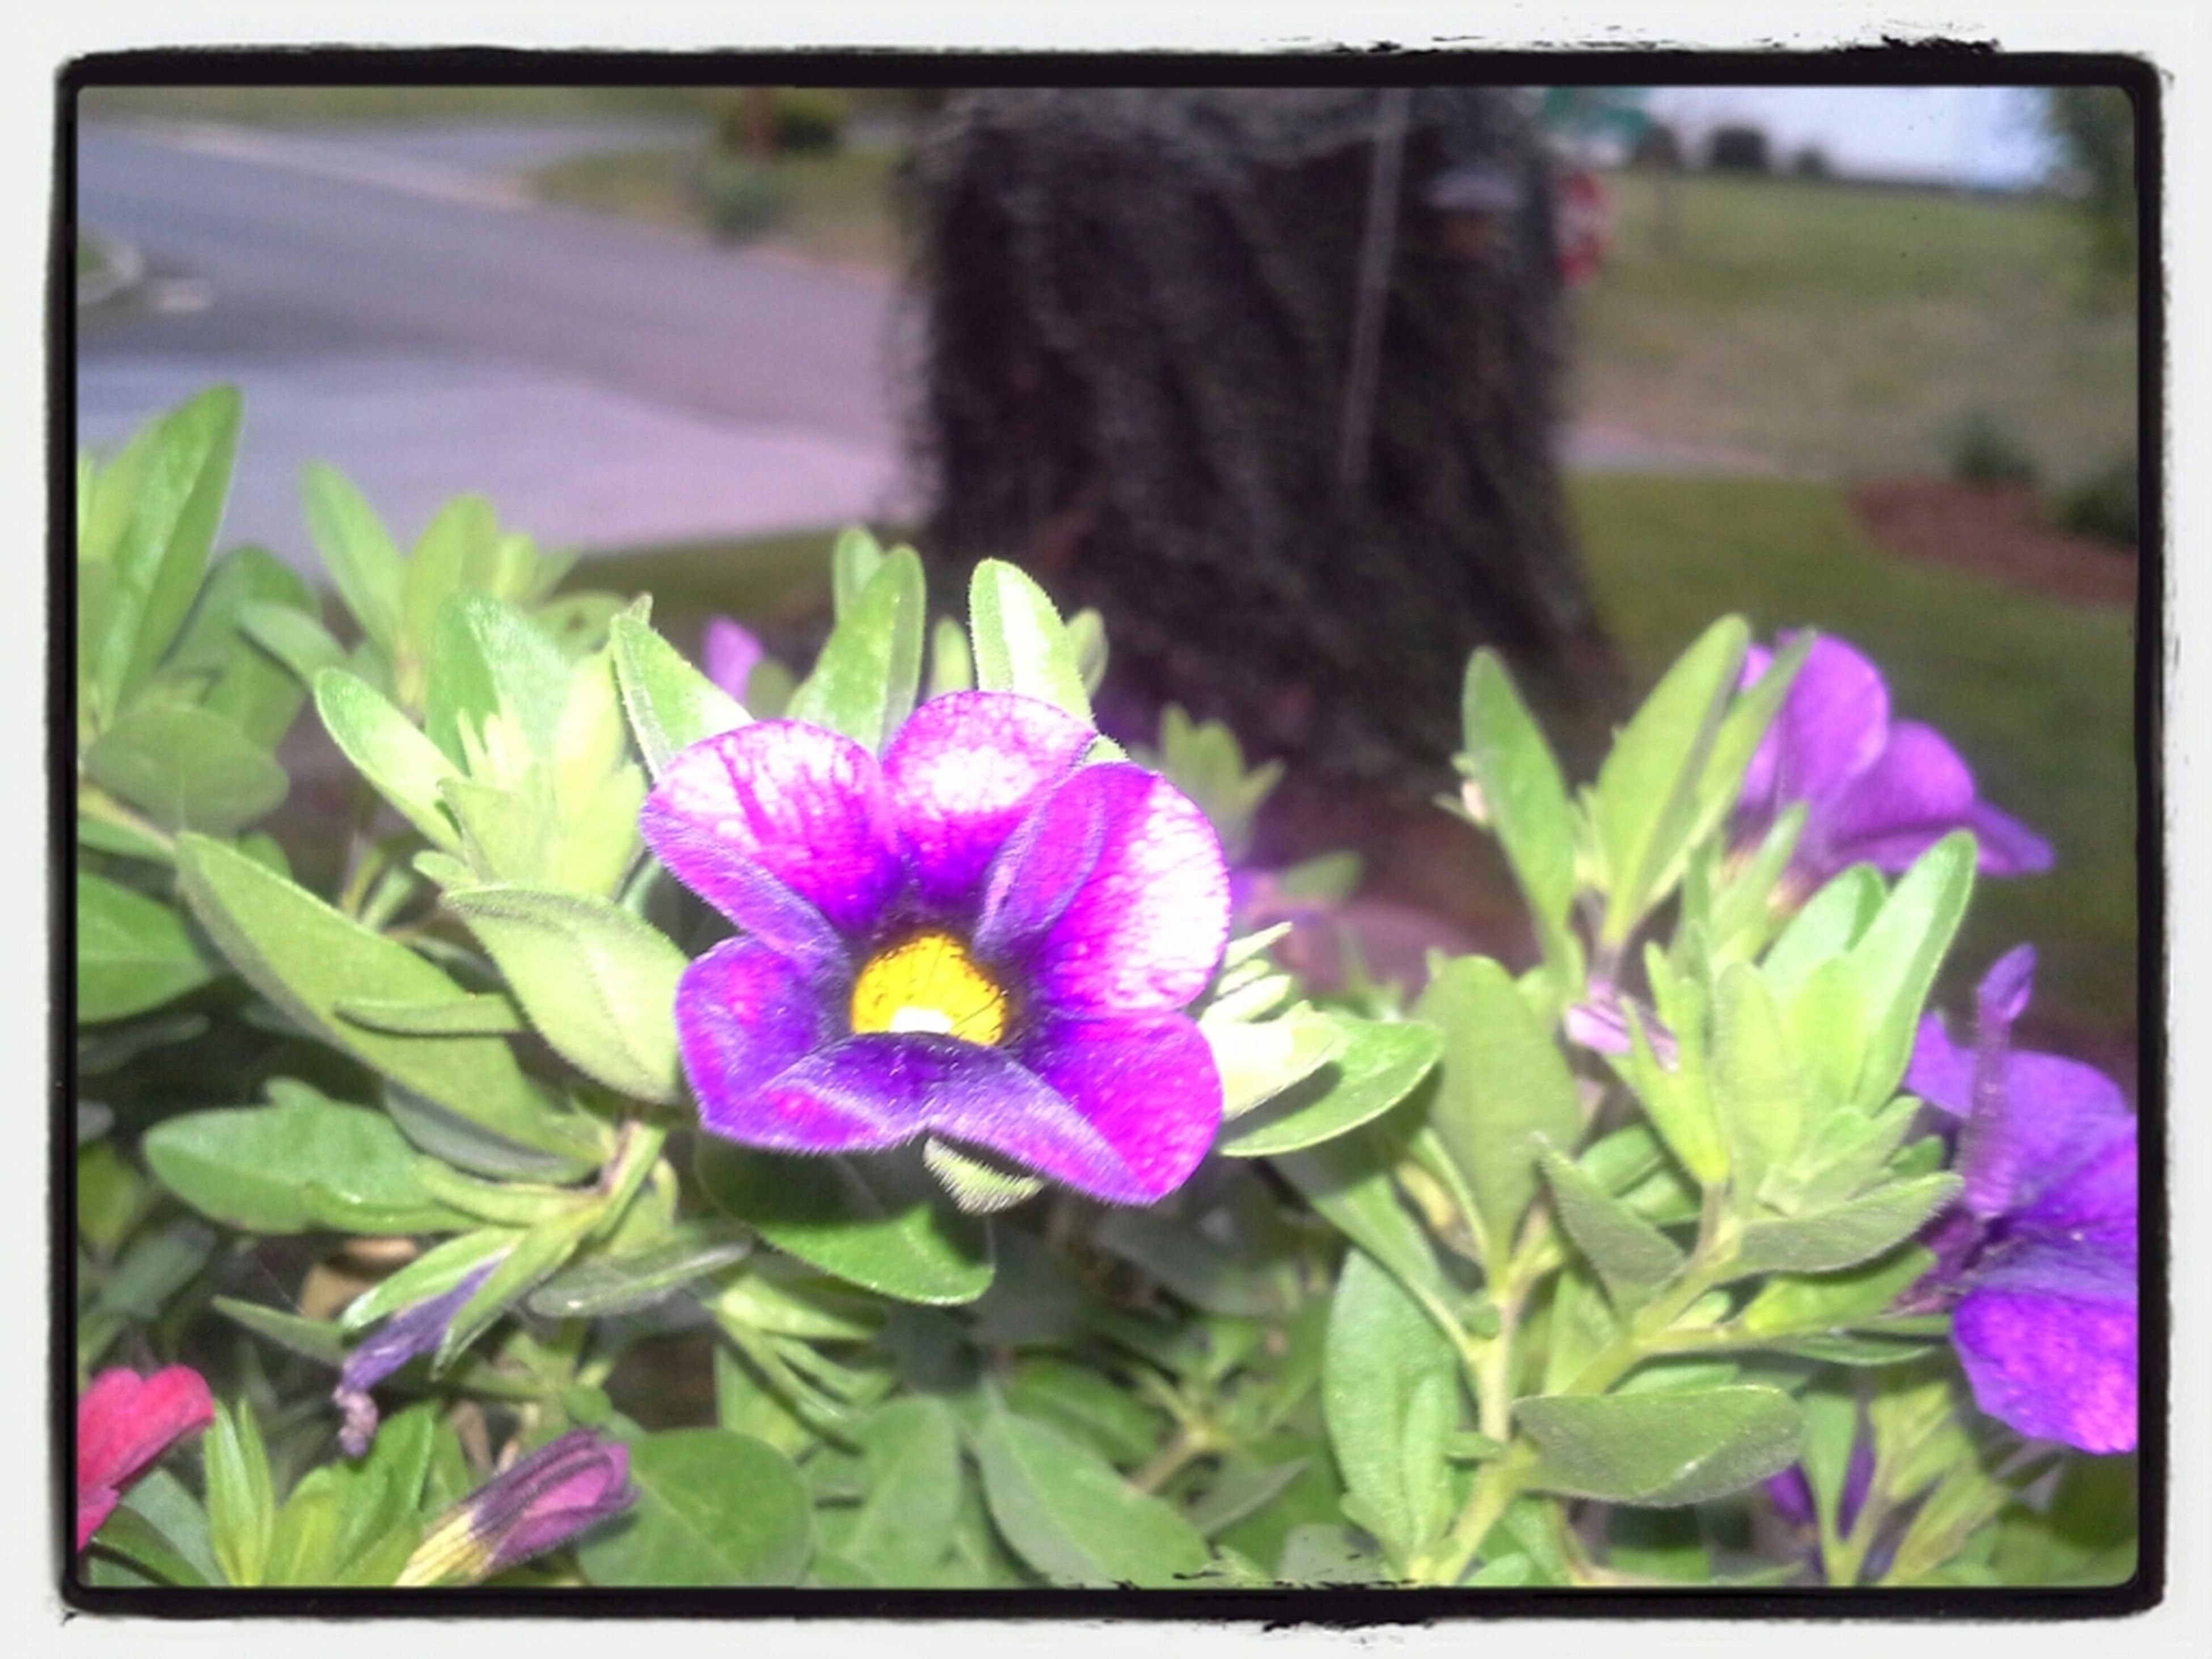 flower, transfer print, freshness, petal, fragility, purple, growth, flower head, auto post production filter, beauty in nature, plant, focus on foreground, blooming, close-up, nature, leaf, in bloom, park - man made space, day, outdoors